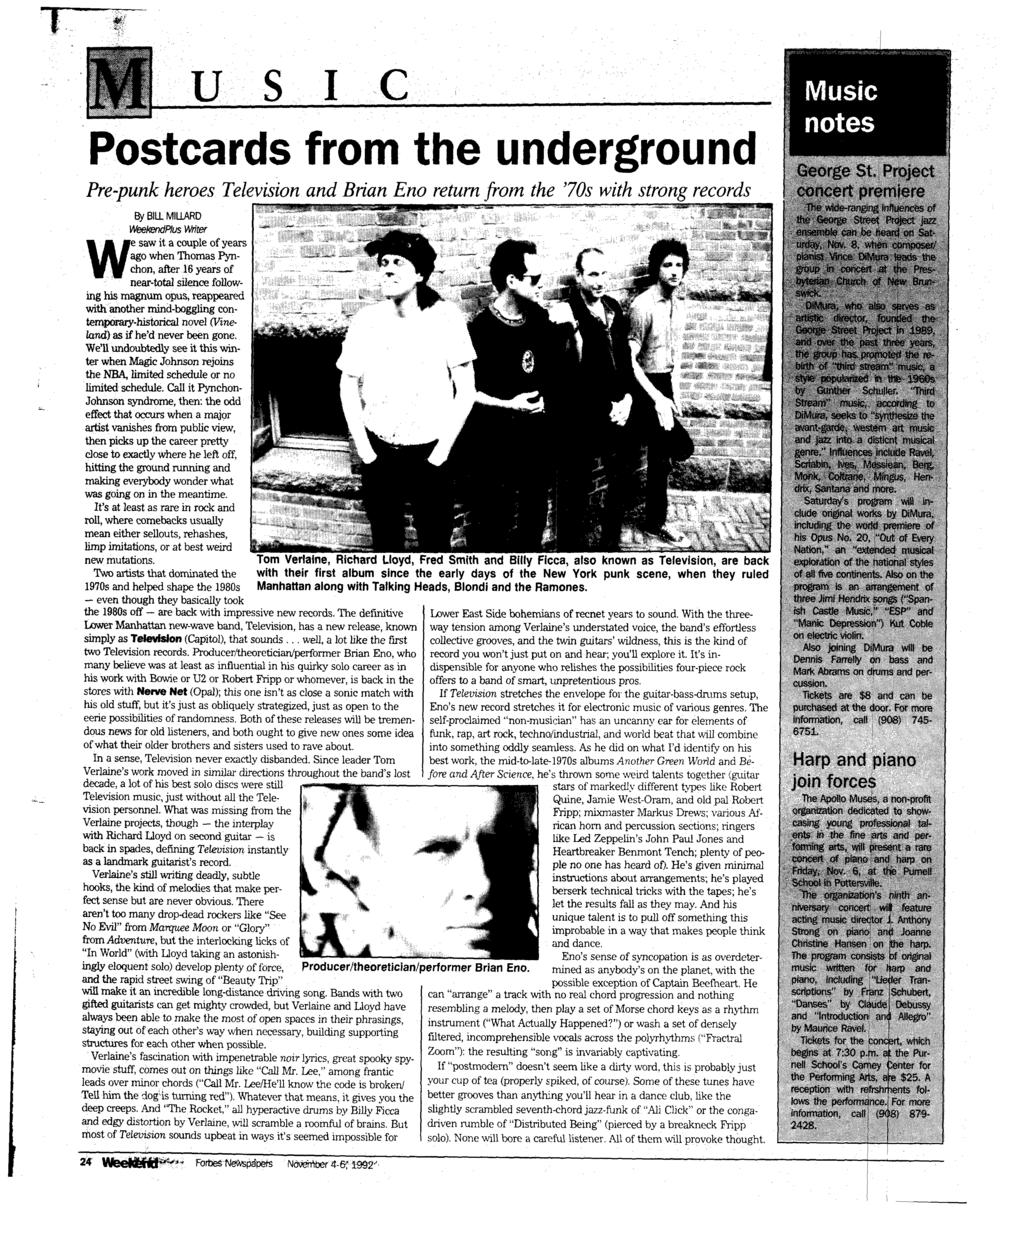 T U S I Postcards from the underground Pre-punk heroes Television and Brian Eno return from the 70s with strong records By BILL MILLARD WeekendPlus Writer We saw it a couple of years ago when Thomas